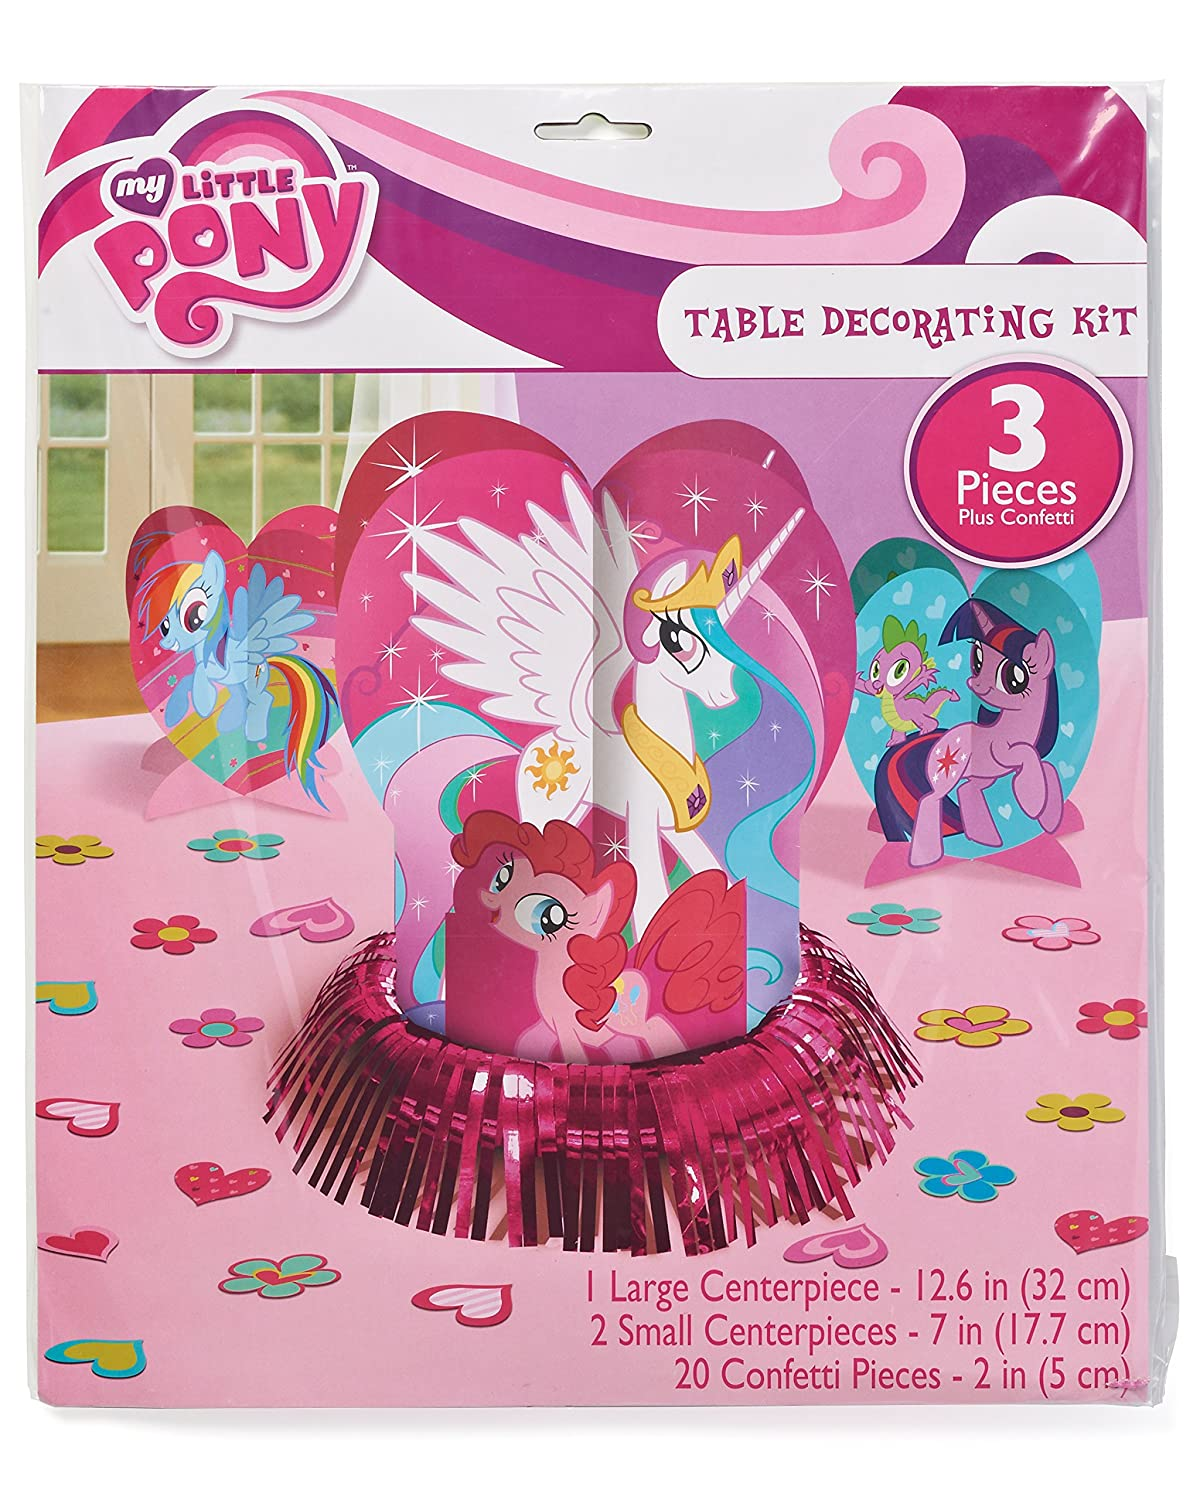 285513 Party Accessory Amscan Table Decorating Kit 6 Kits TradeMart Inc My Little Pony Friendship Collection